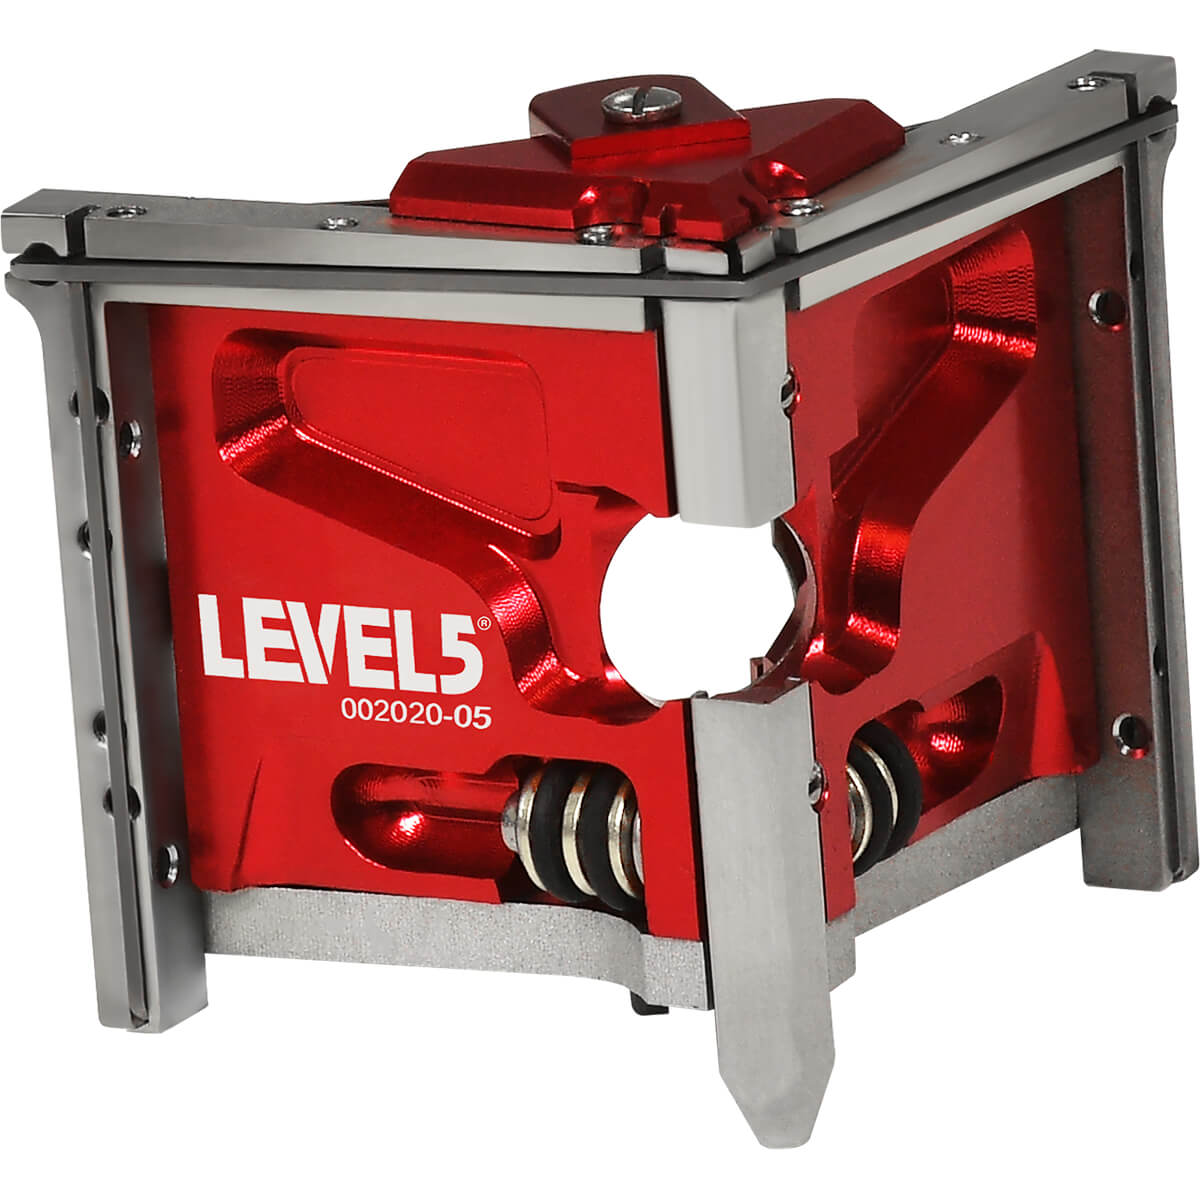 LEVEL5 2.5 Inch Drywall Corner Finisher | 4-732